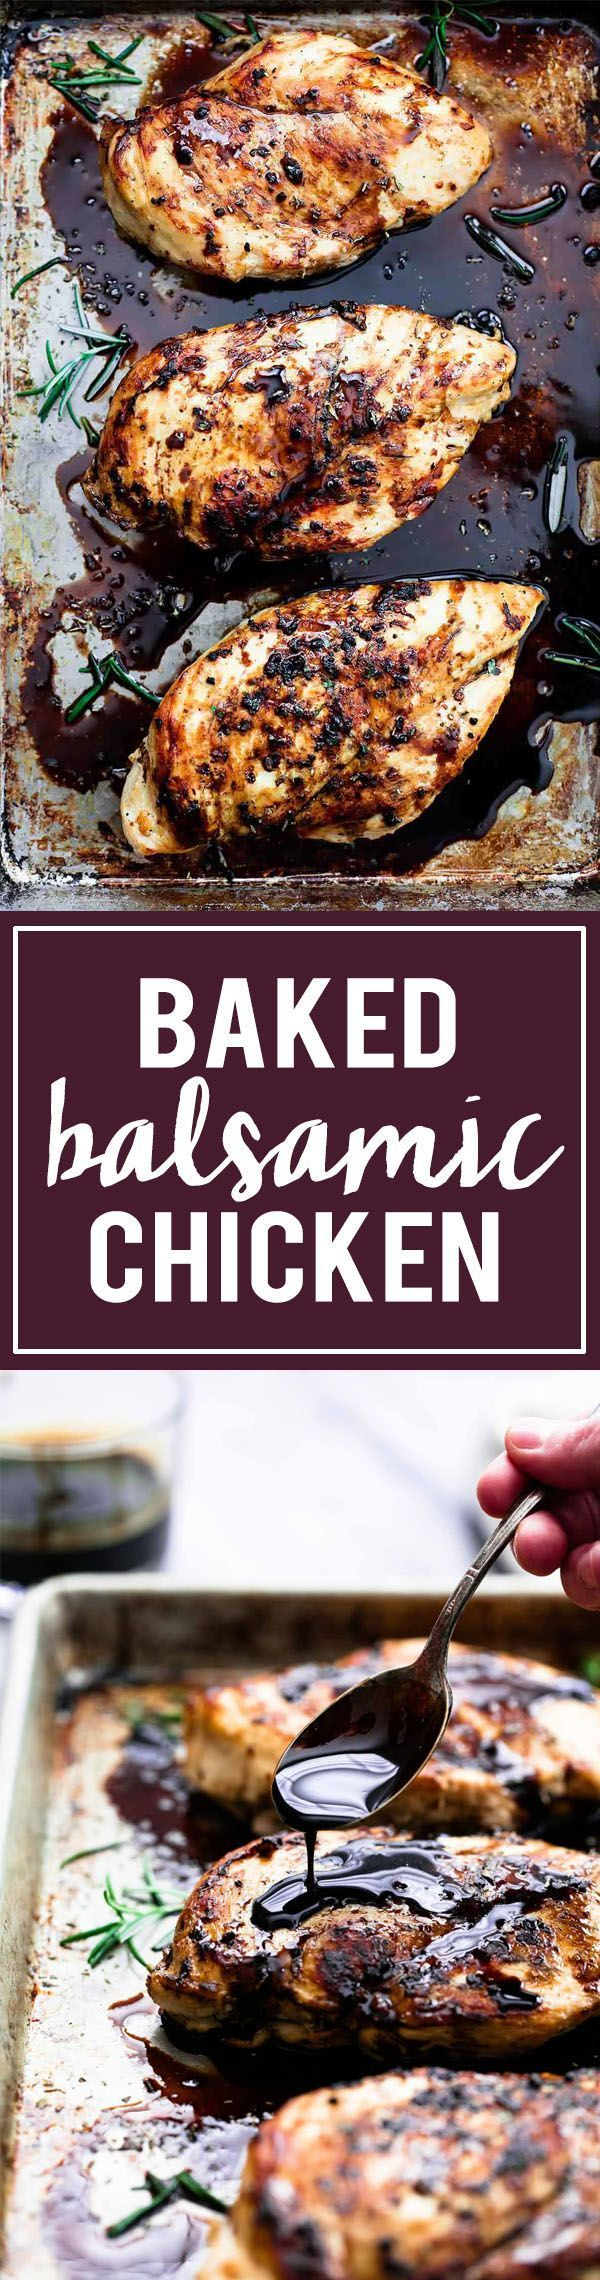 The taste of the balsamic vinegar would go SO well with the chicken, I imagine.